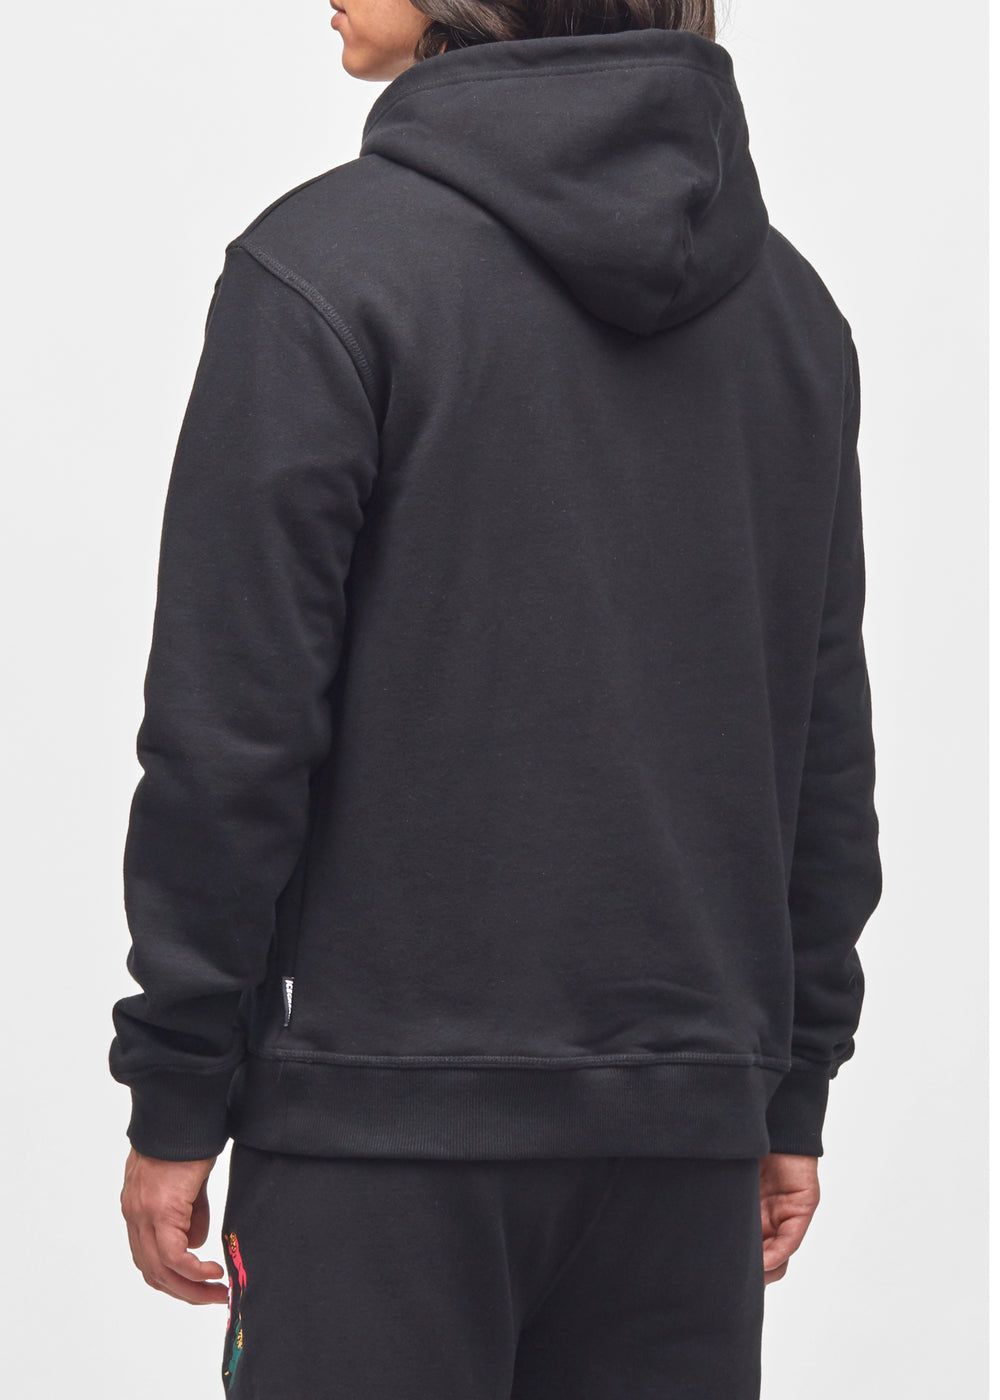 chase-hoodie-491-6308-blk-4